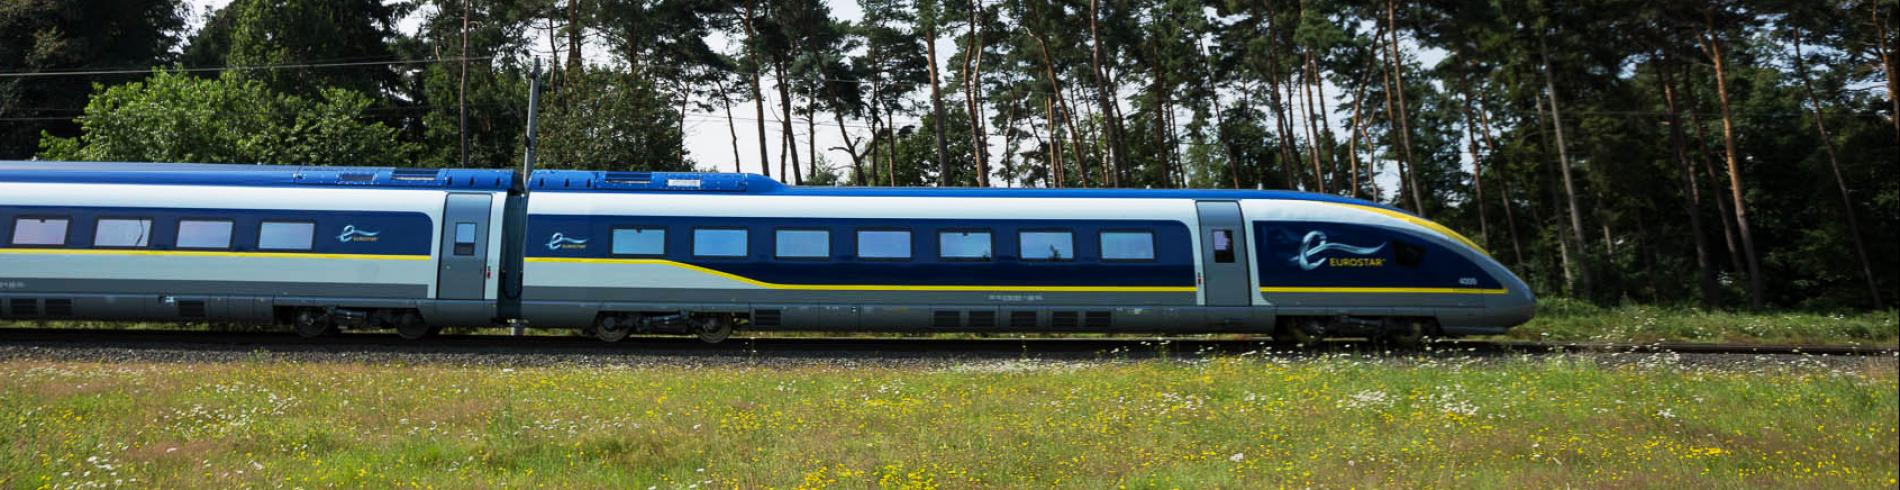 Brexit - image of train